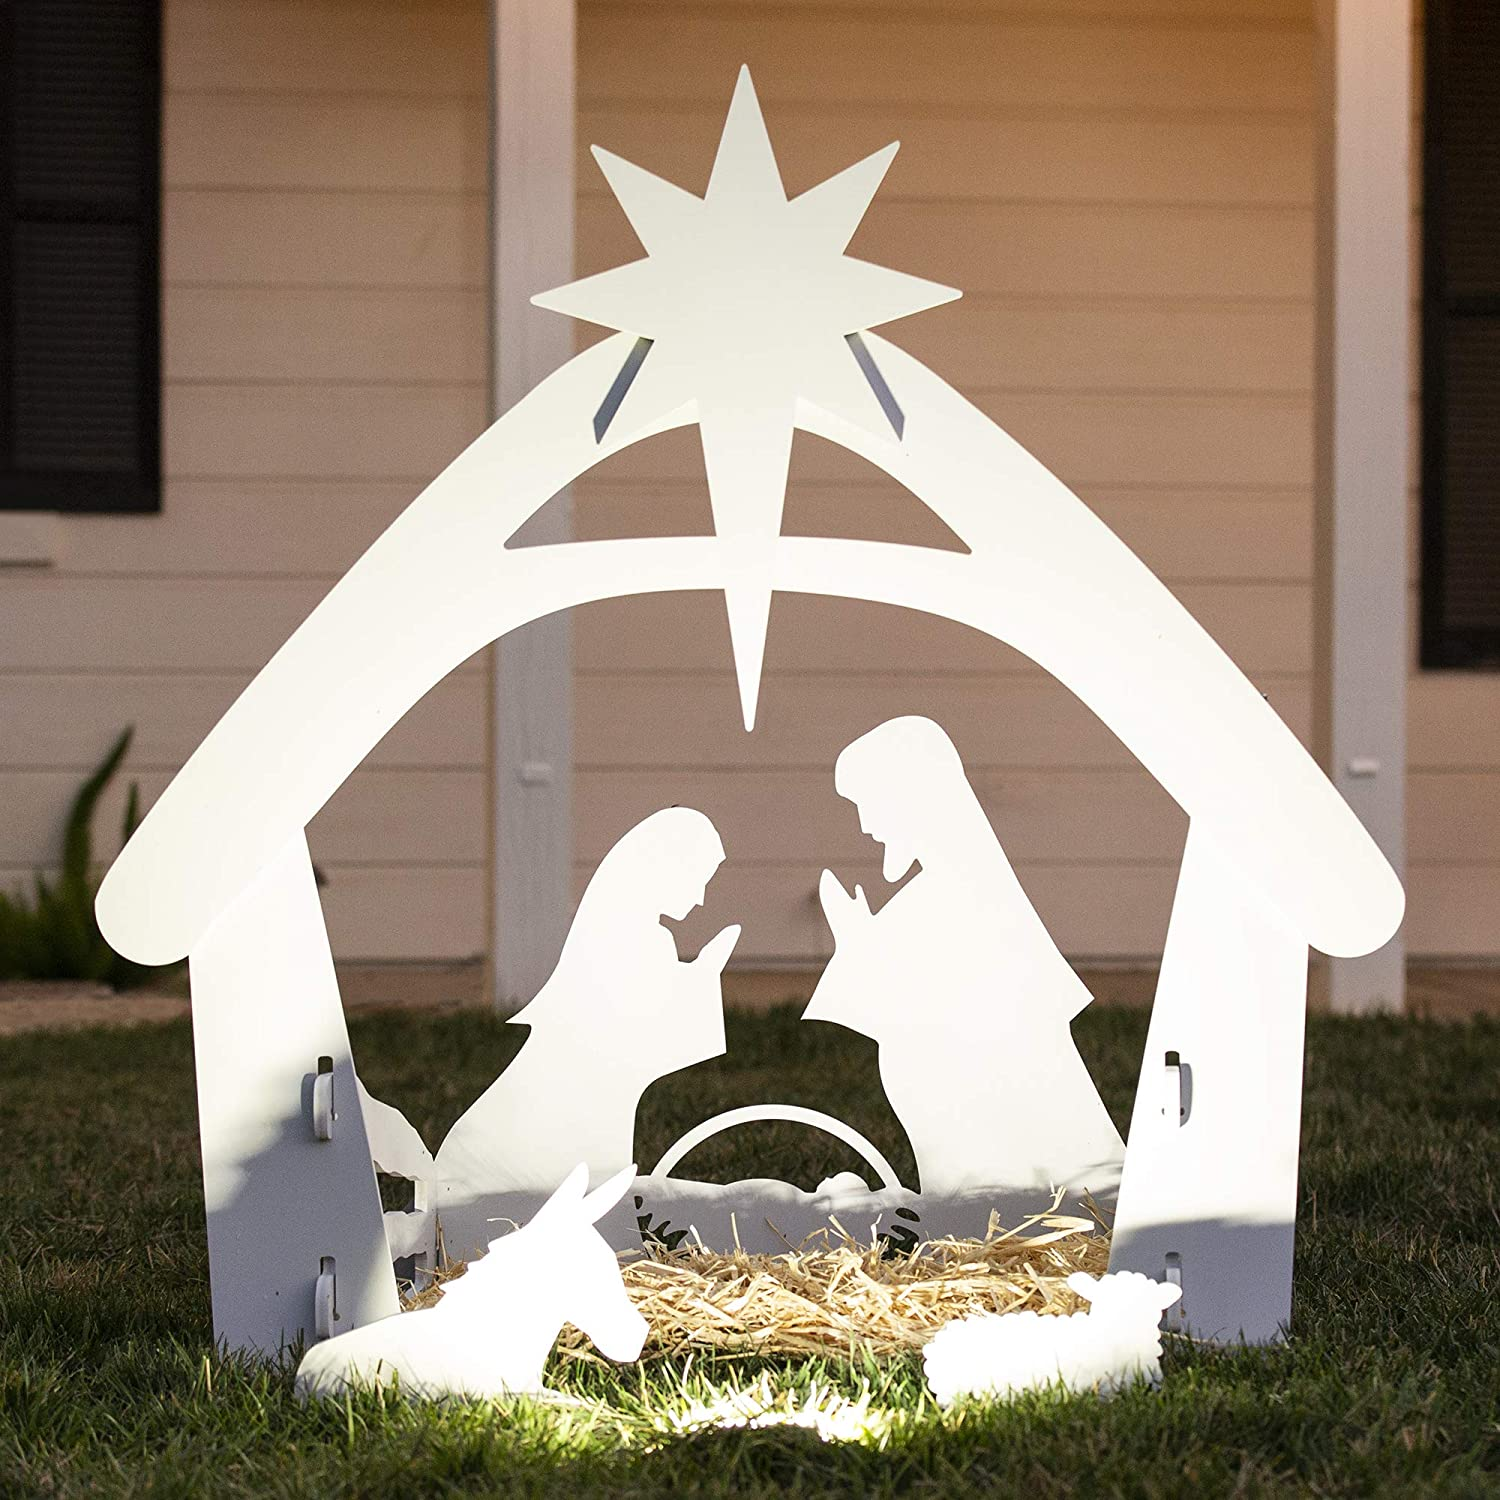 Best Choice Products 4ft Christmas Holy Family Nativity Scene, Outdoor Yard Decoration w/Water-Resistant PVC